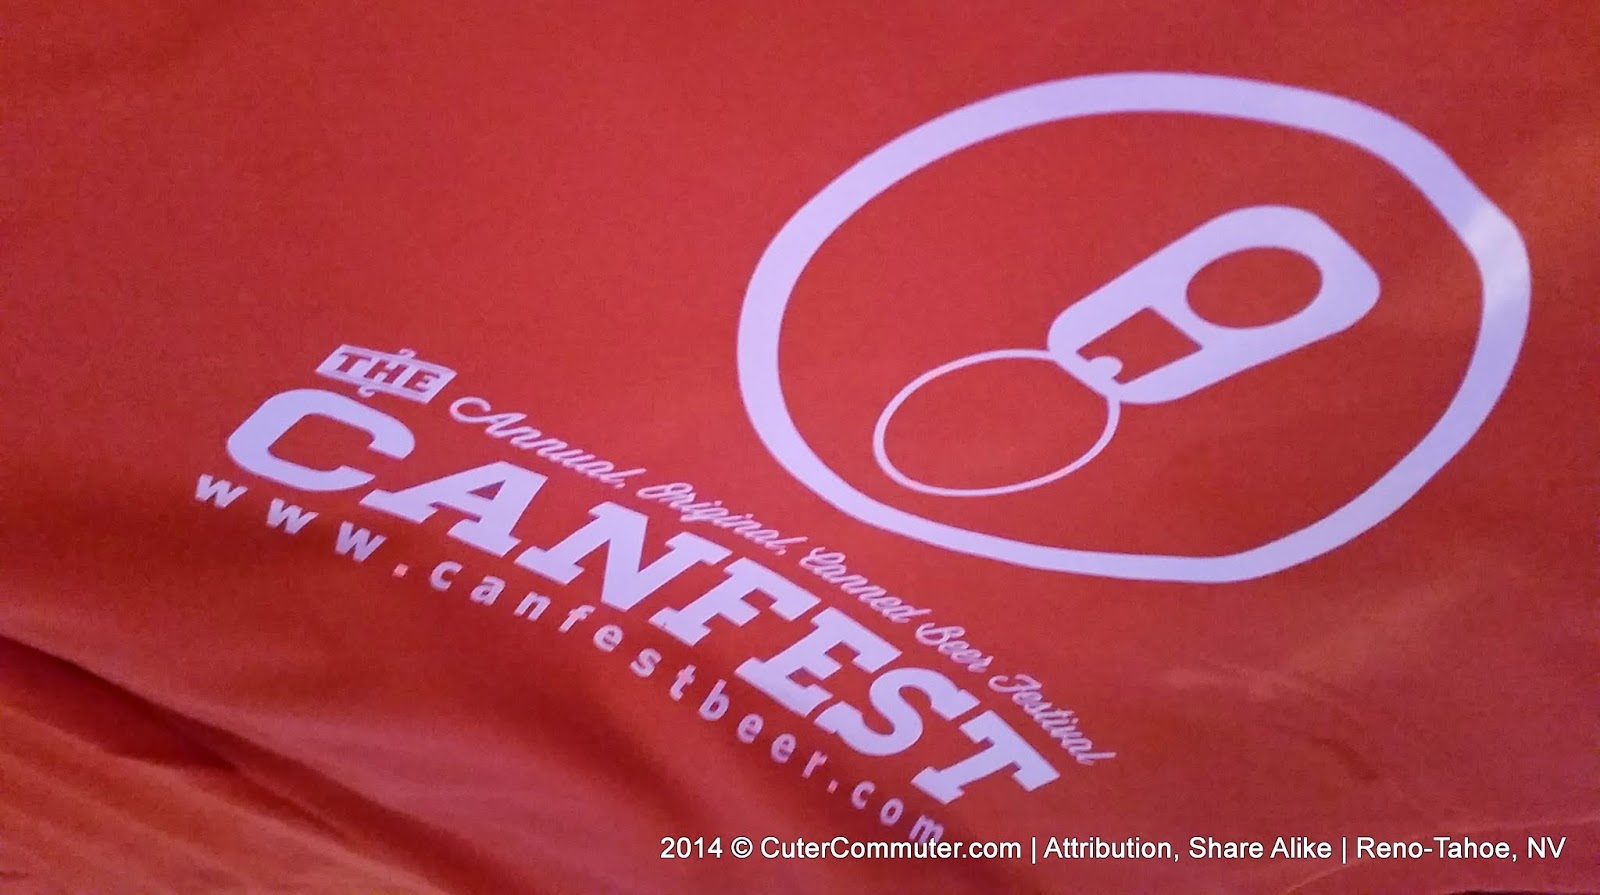 Canfest 2014 graphic